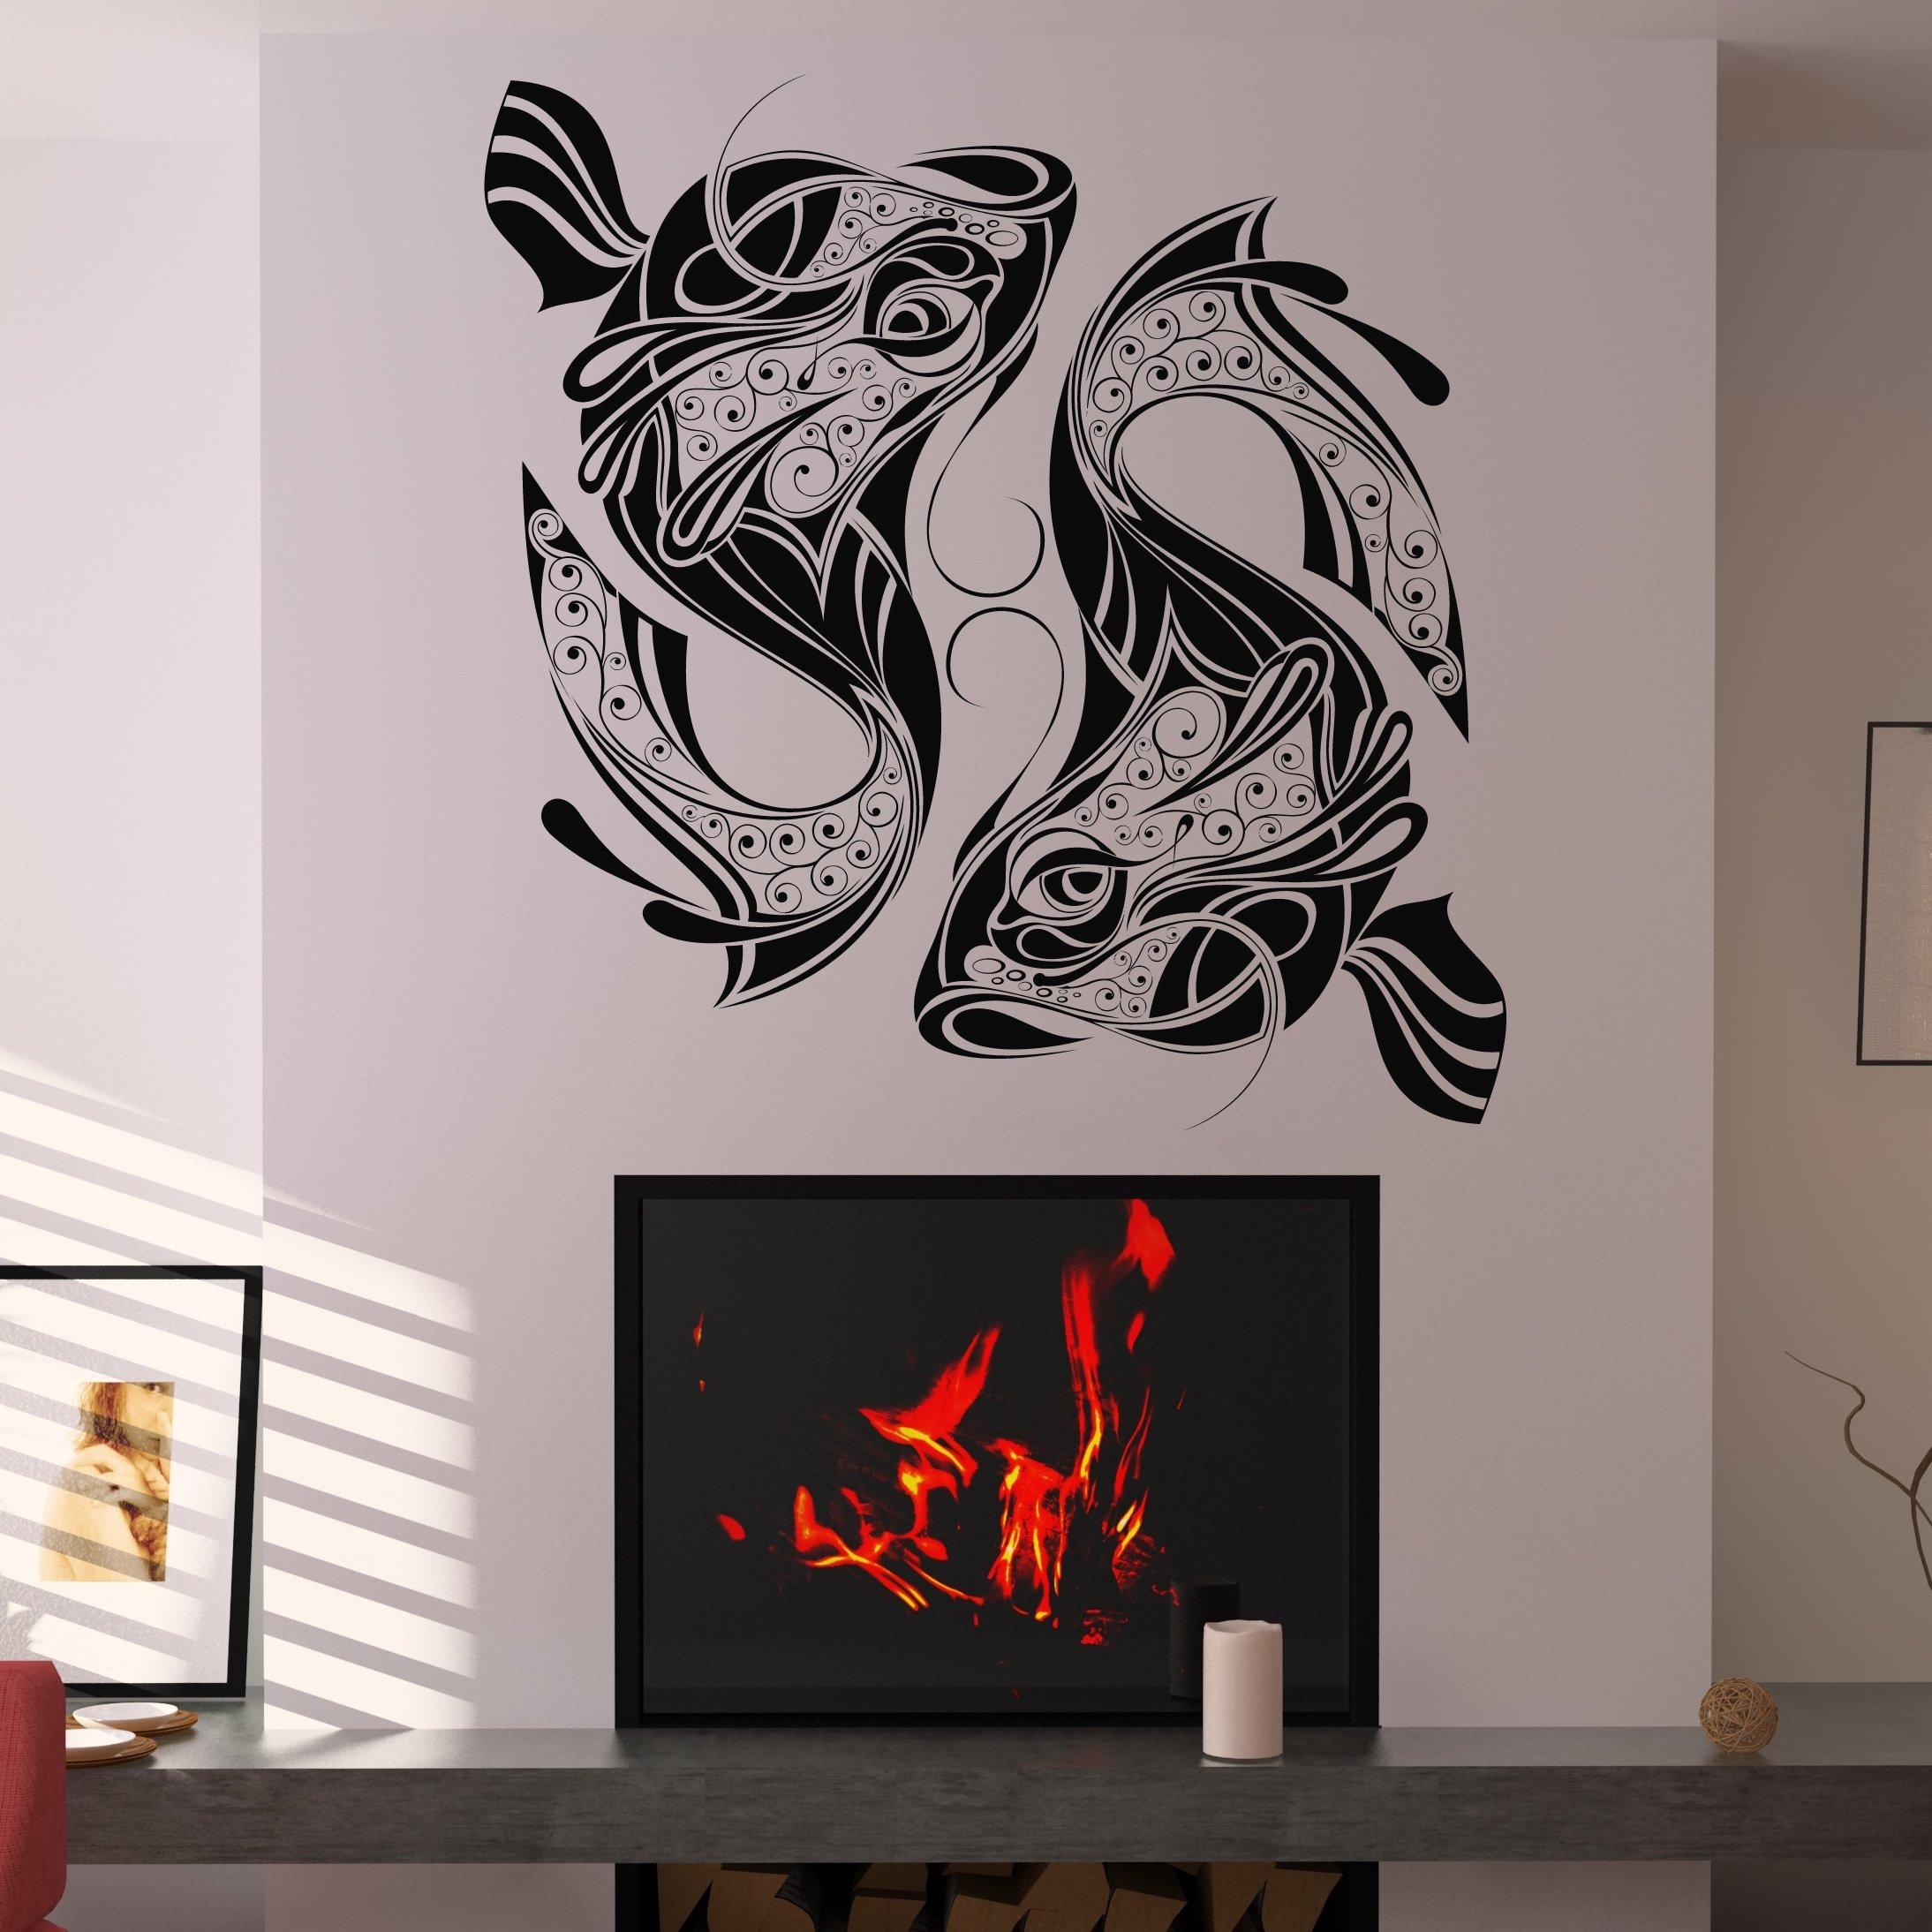 Wall Art Decals For Living Room: 17 Architectural Wall Graphics Images